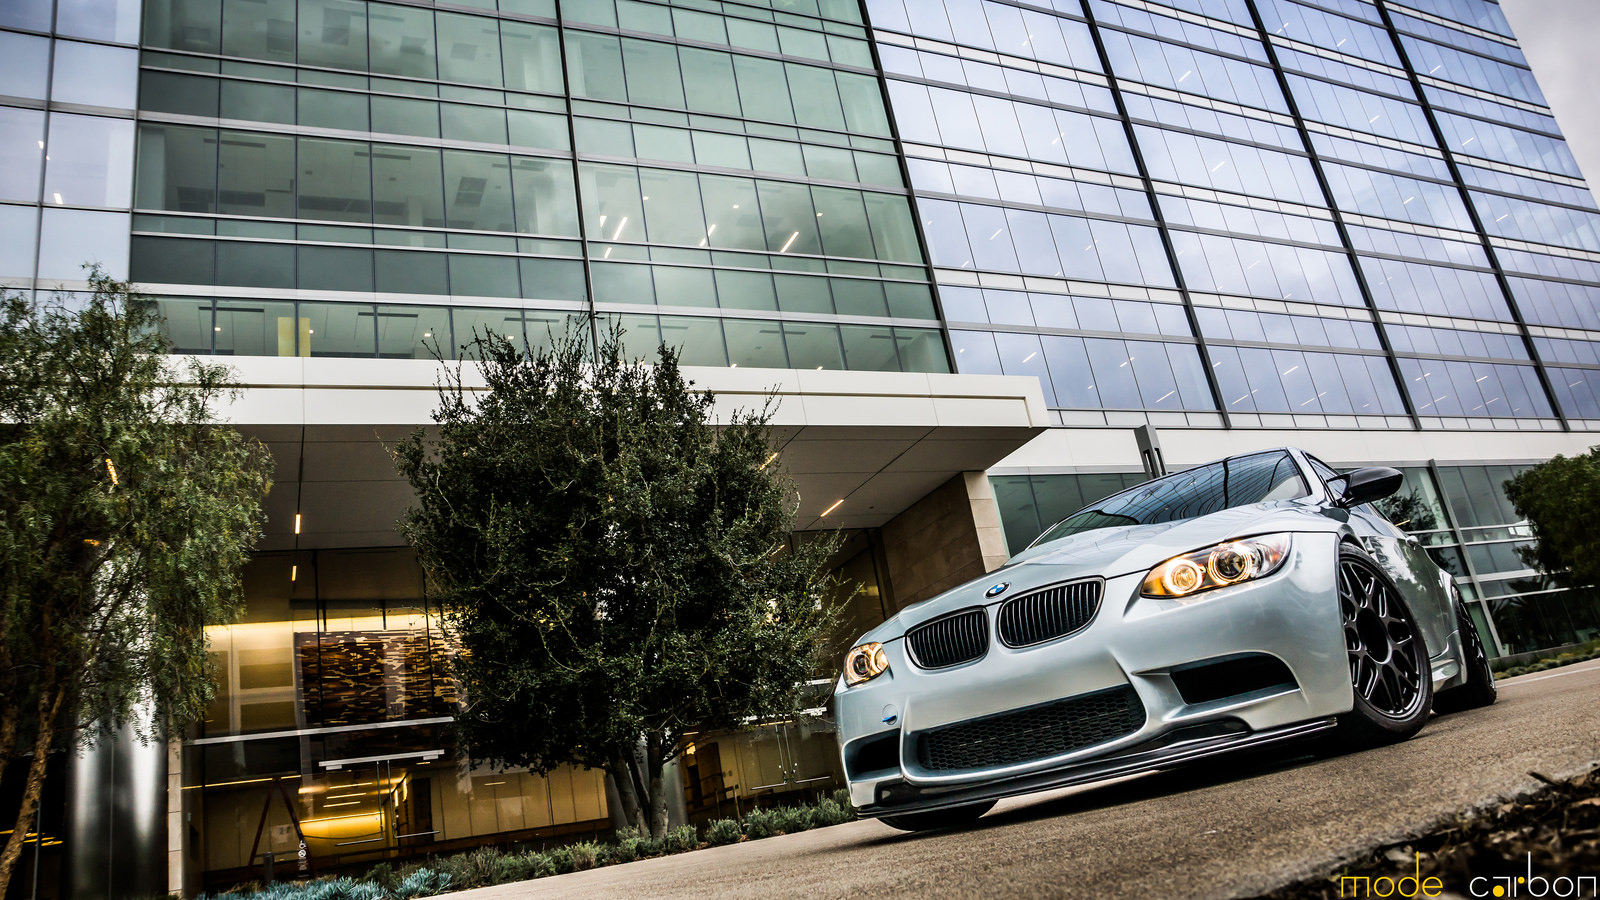 BMW M3 E92 Silverstone Slicer by Mode Carbon